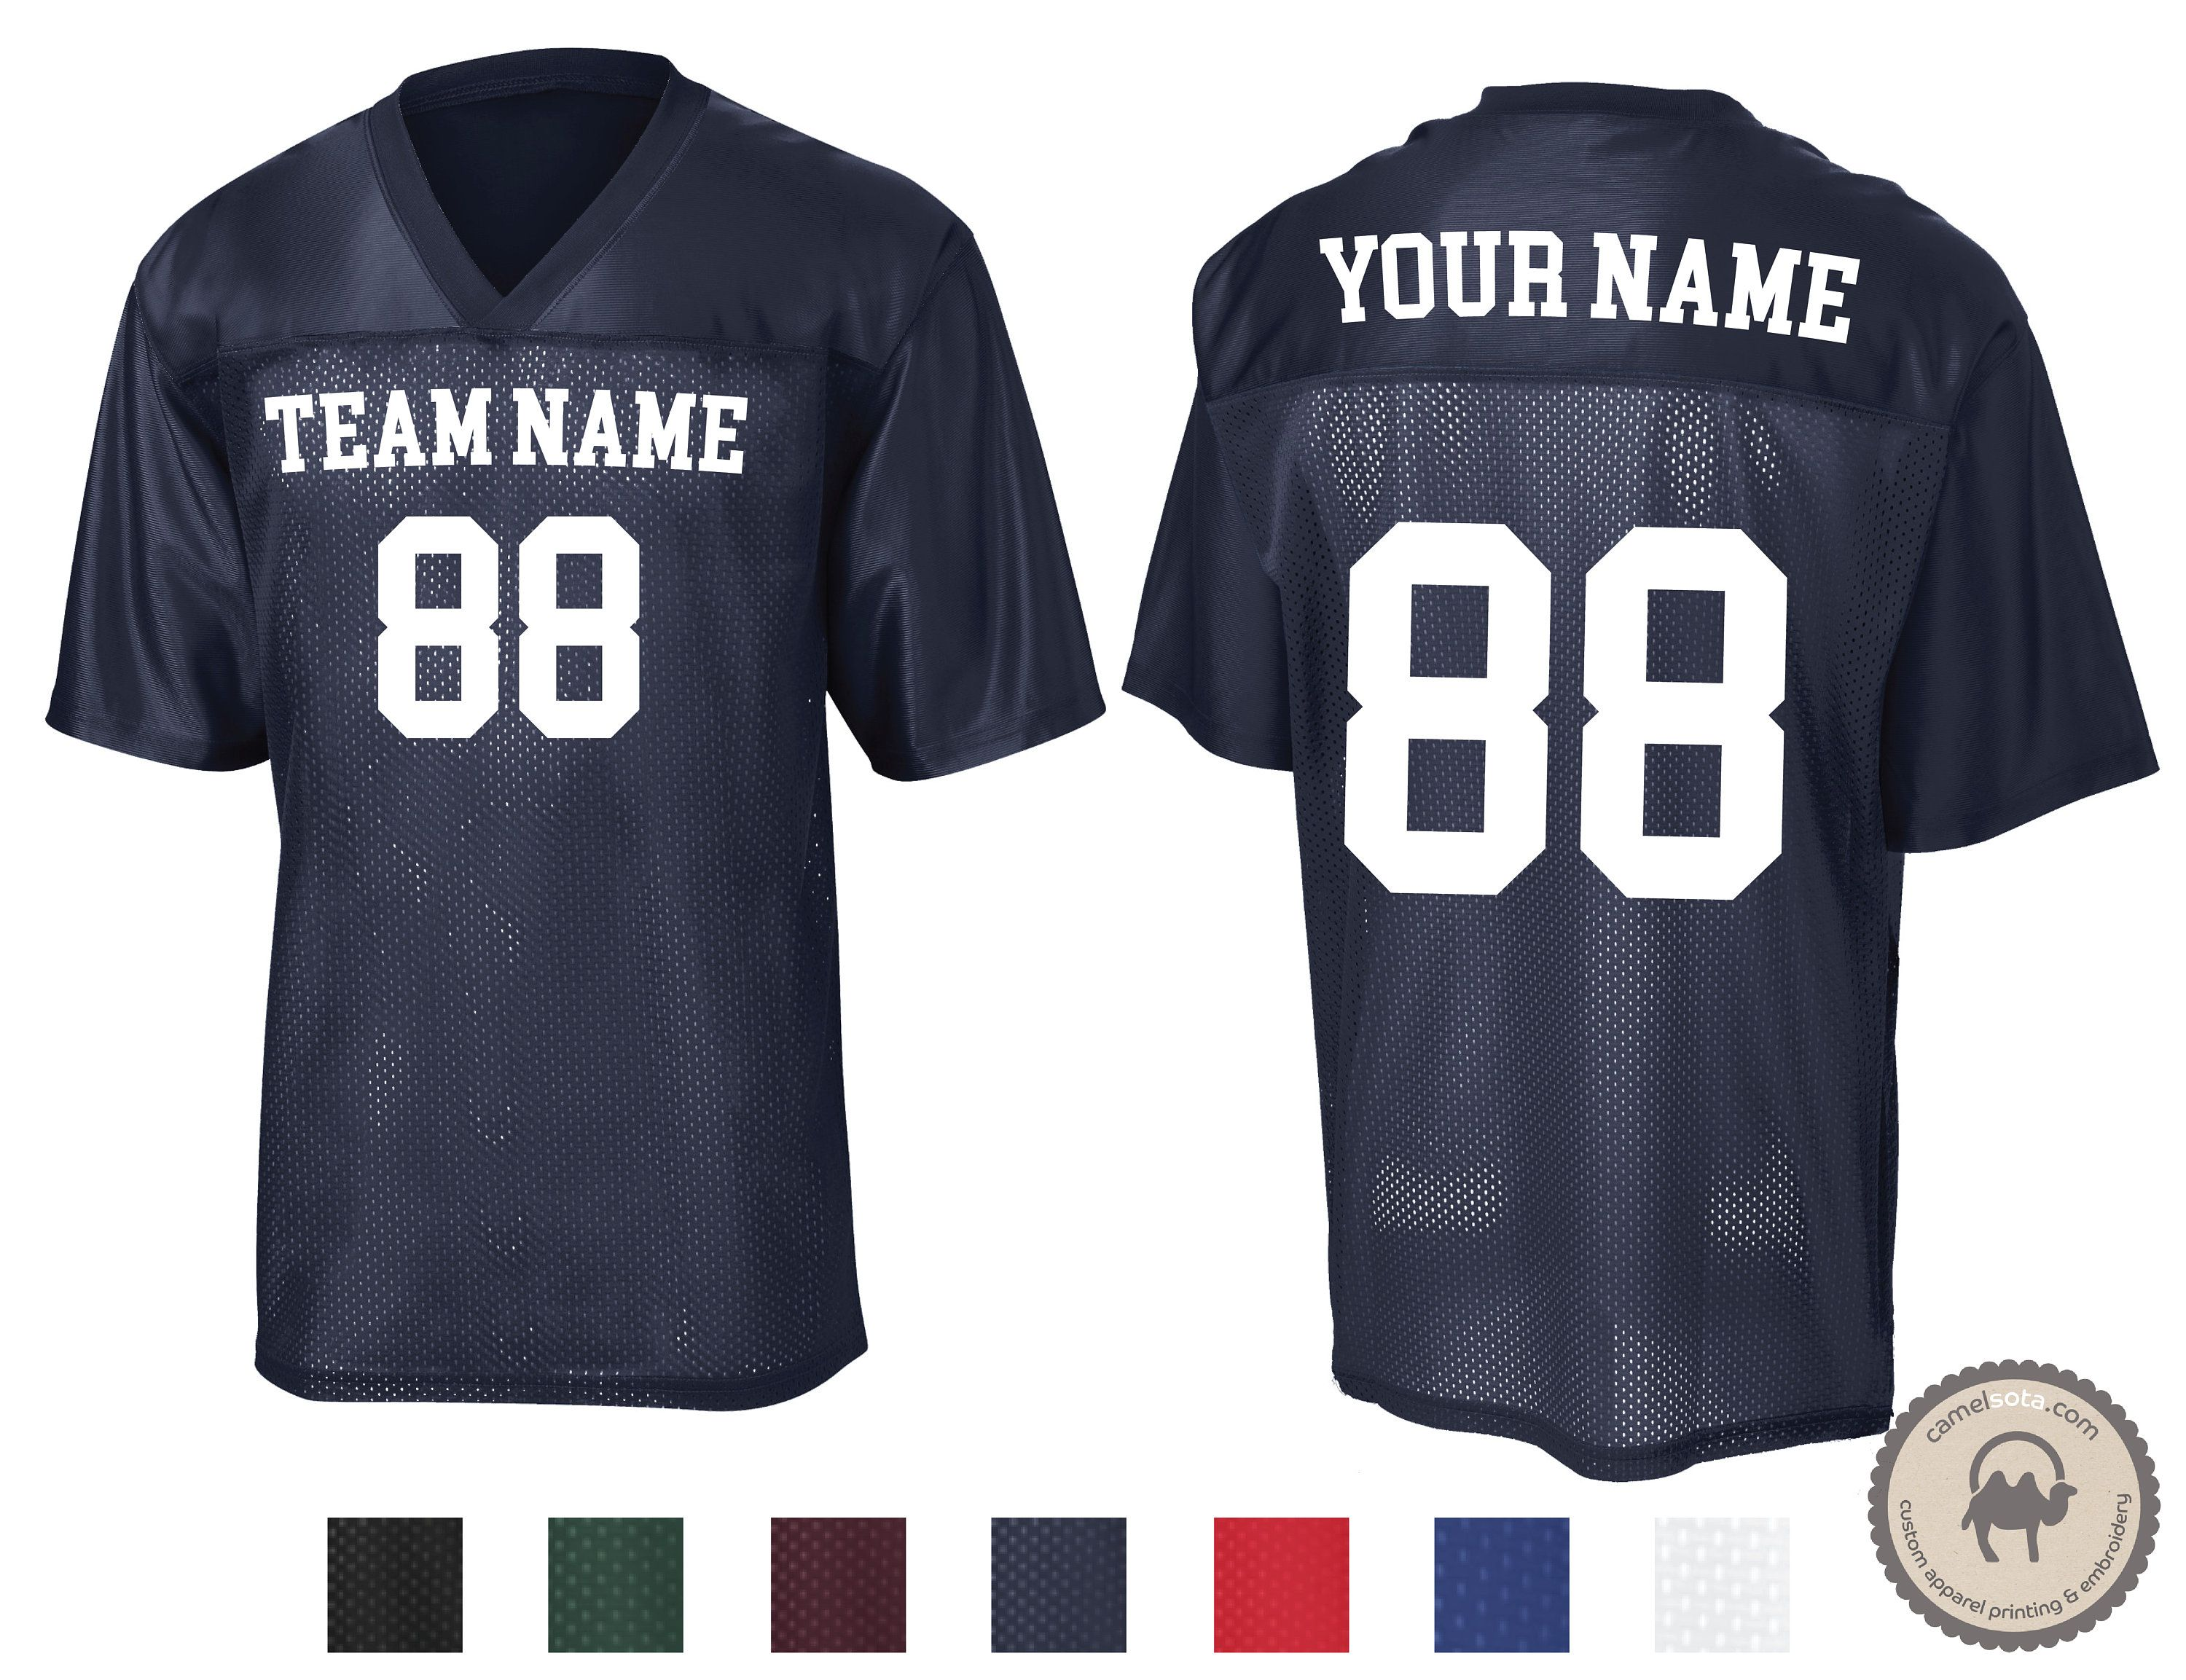 Personalized T Shirt Sport Team Uniform Jersey Name Number Baseball Softball